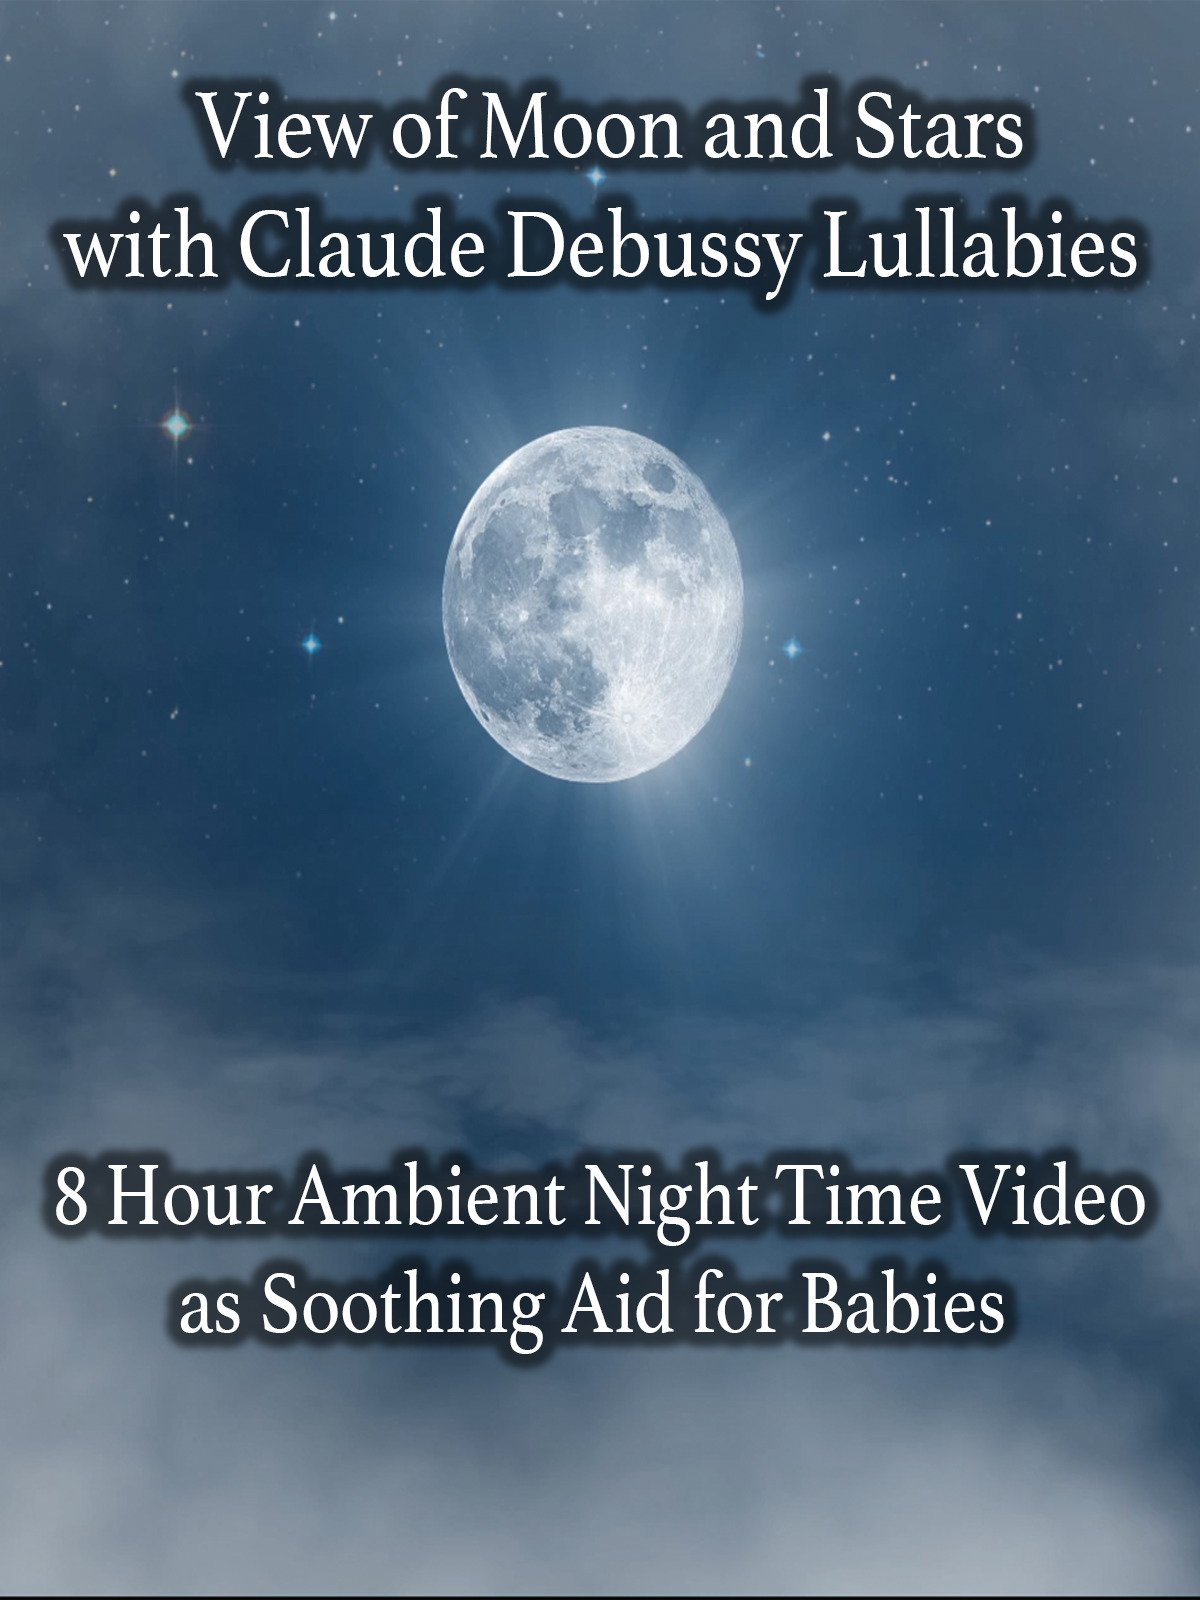 View of Moon and Stars with Claude Debussy Lullabies 8 Hour Ambient Night Time Video as Soothing Aid for Babies